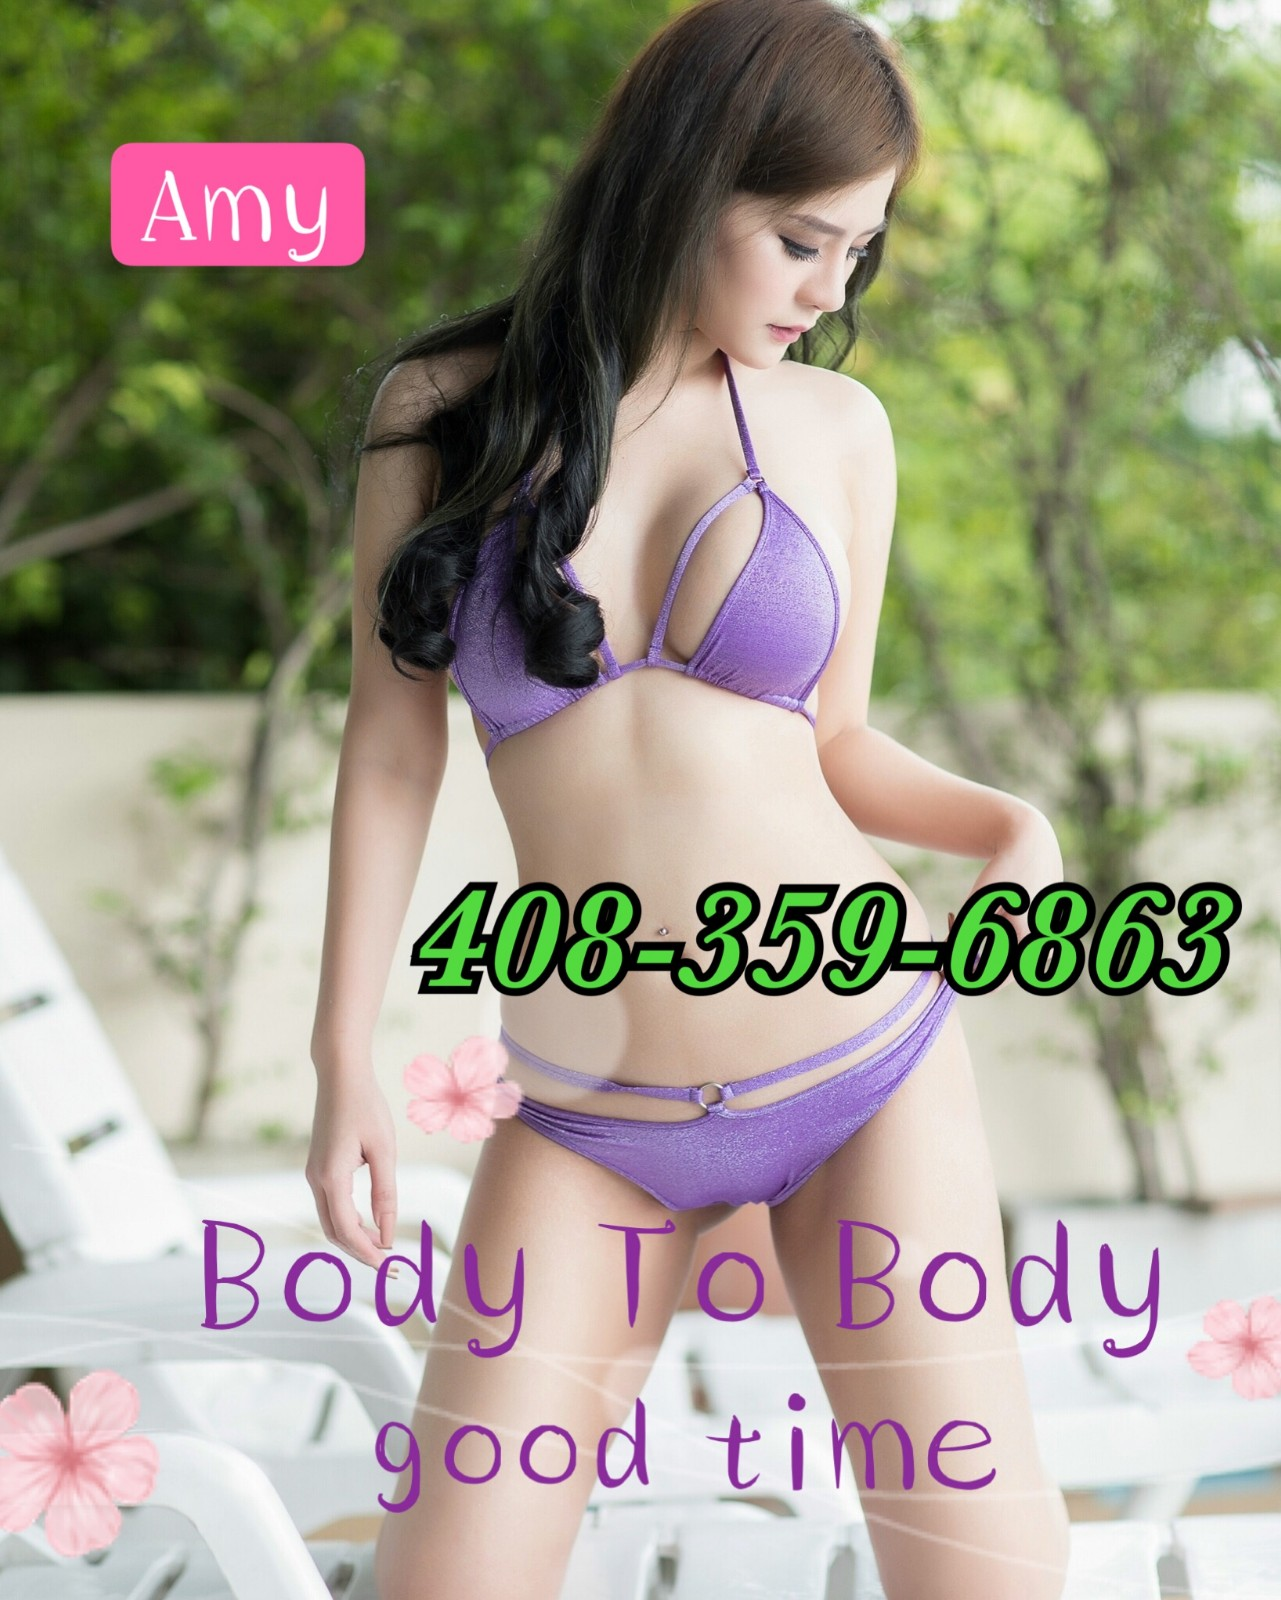 🔵▬💕▬🔵Asian&Young&Sexy▬ 🔵Palo Alto▬▬🔵💕▬ 100% ▬💕▬ Tight▬💕▬Grand_New_Open